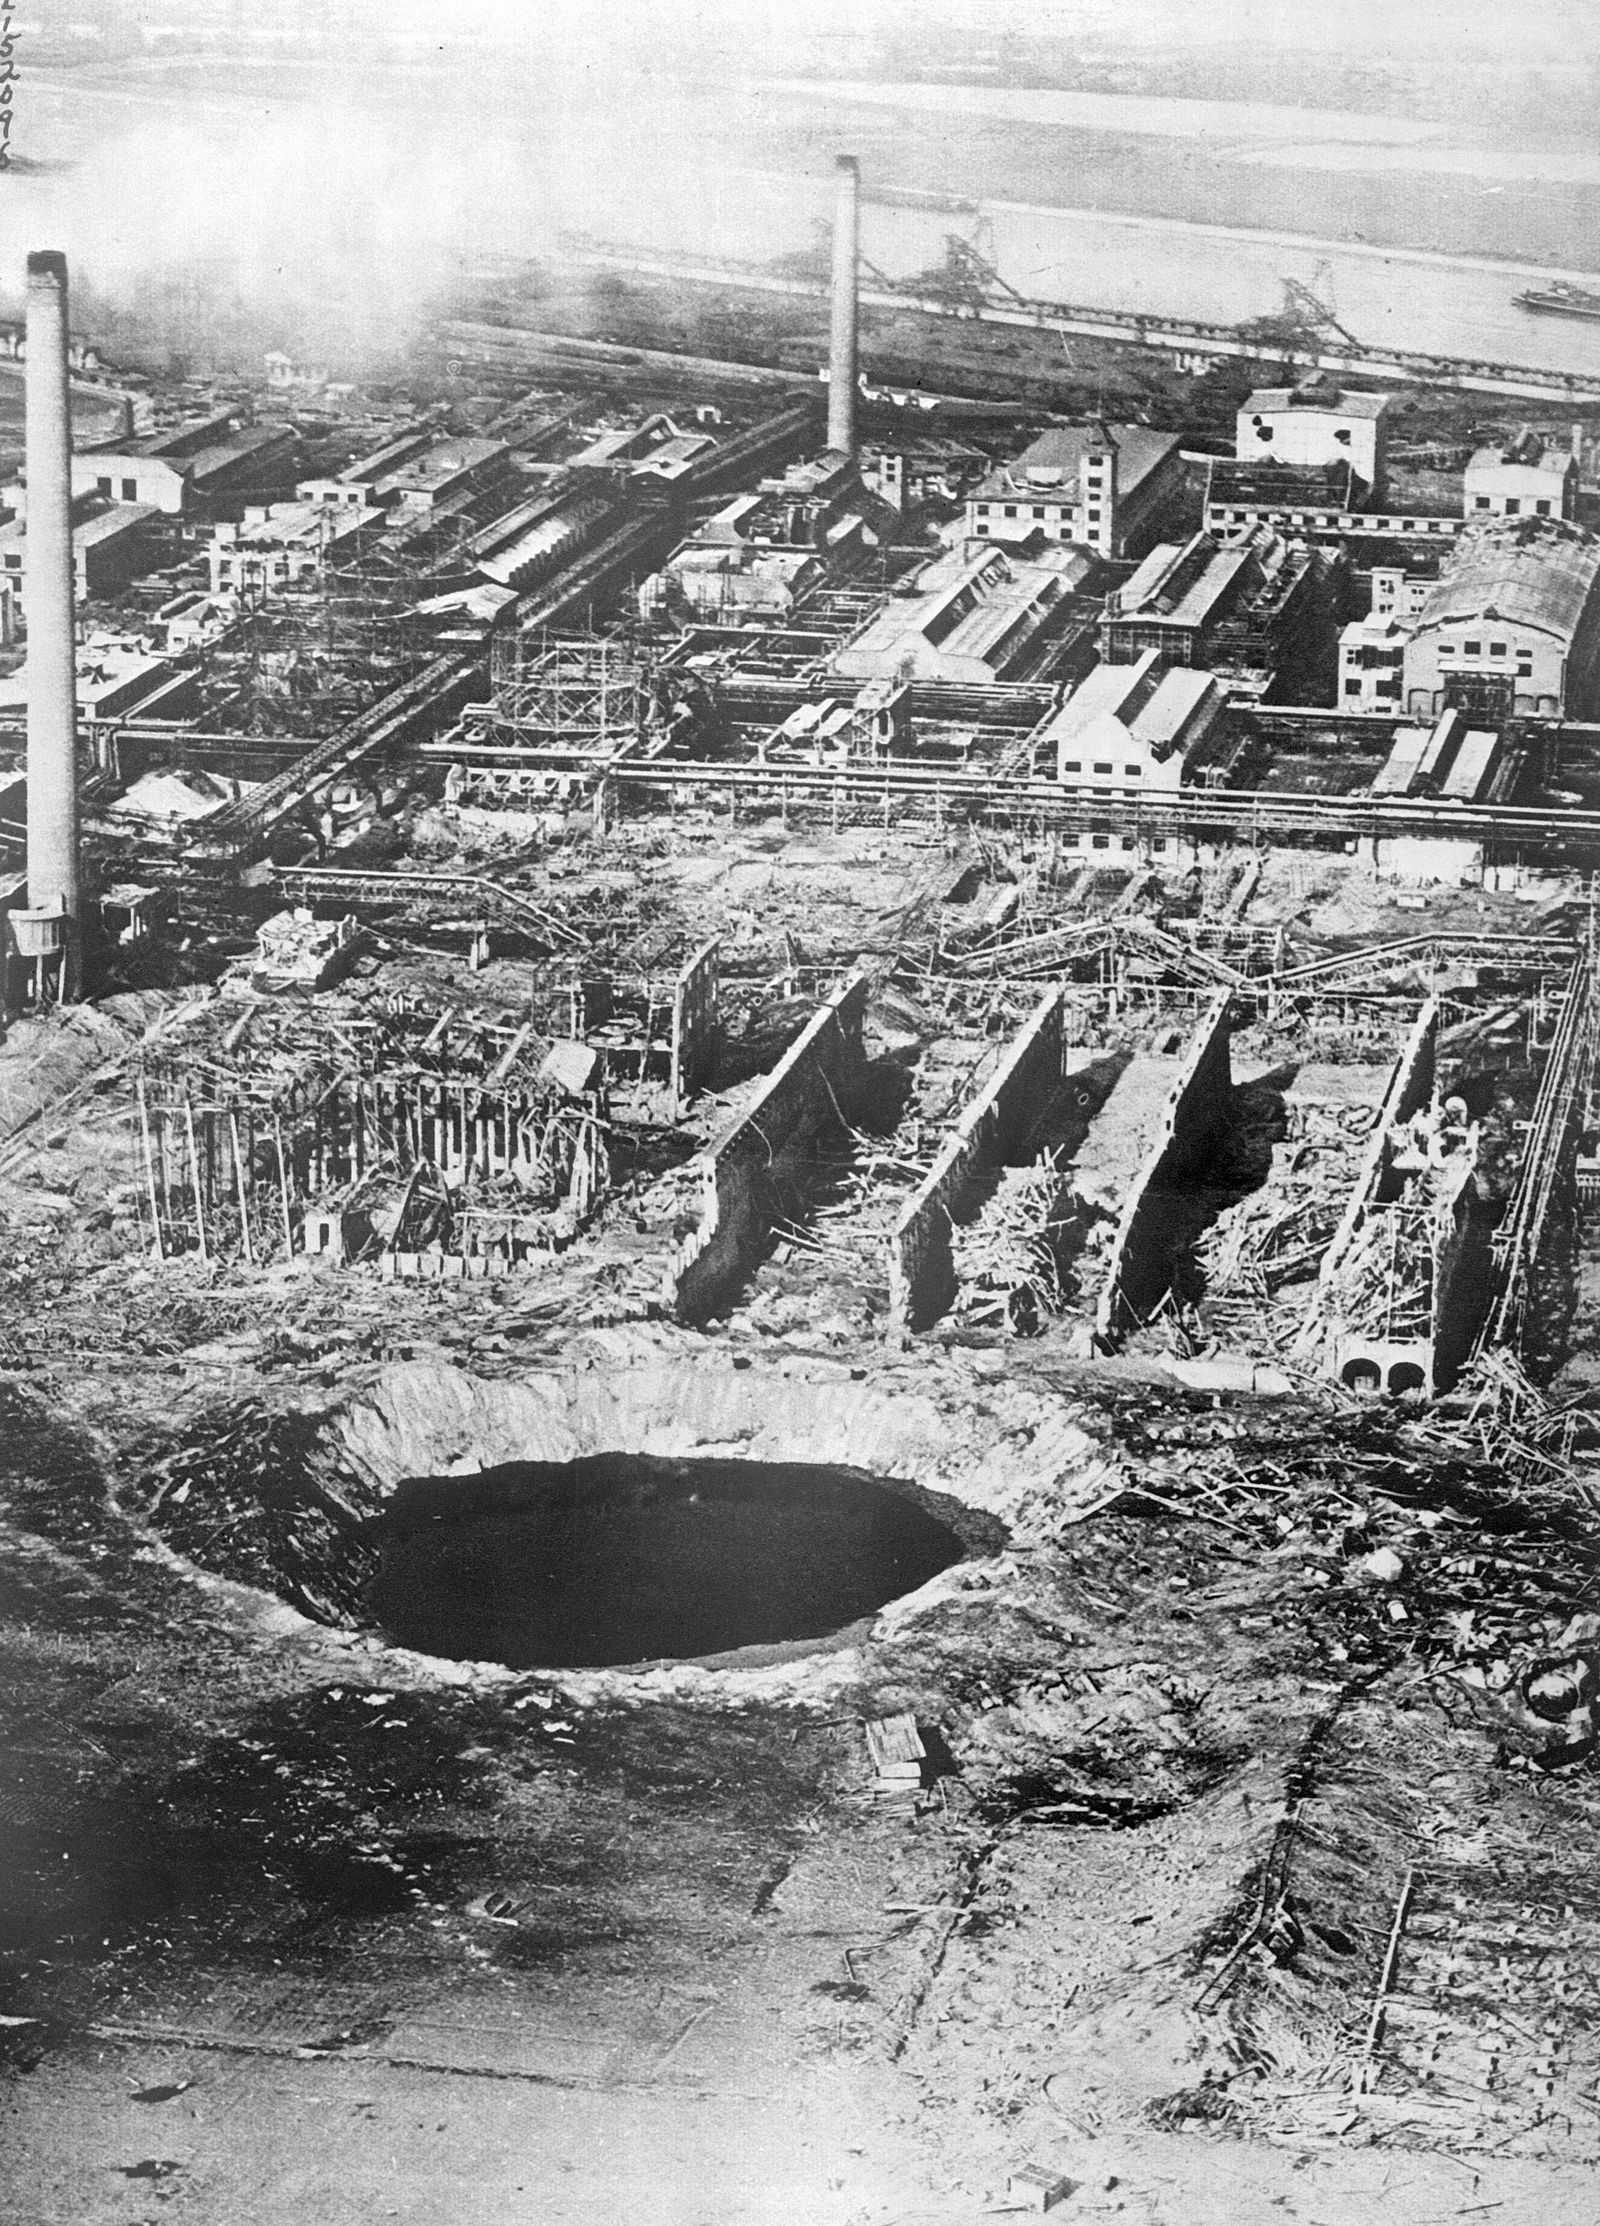 Aerial Of Crater Formed By Explosion